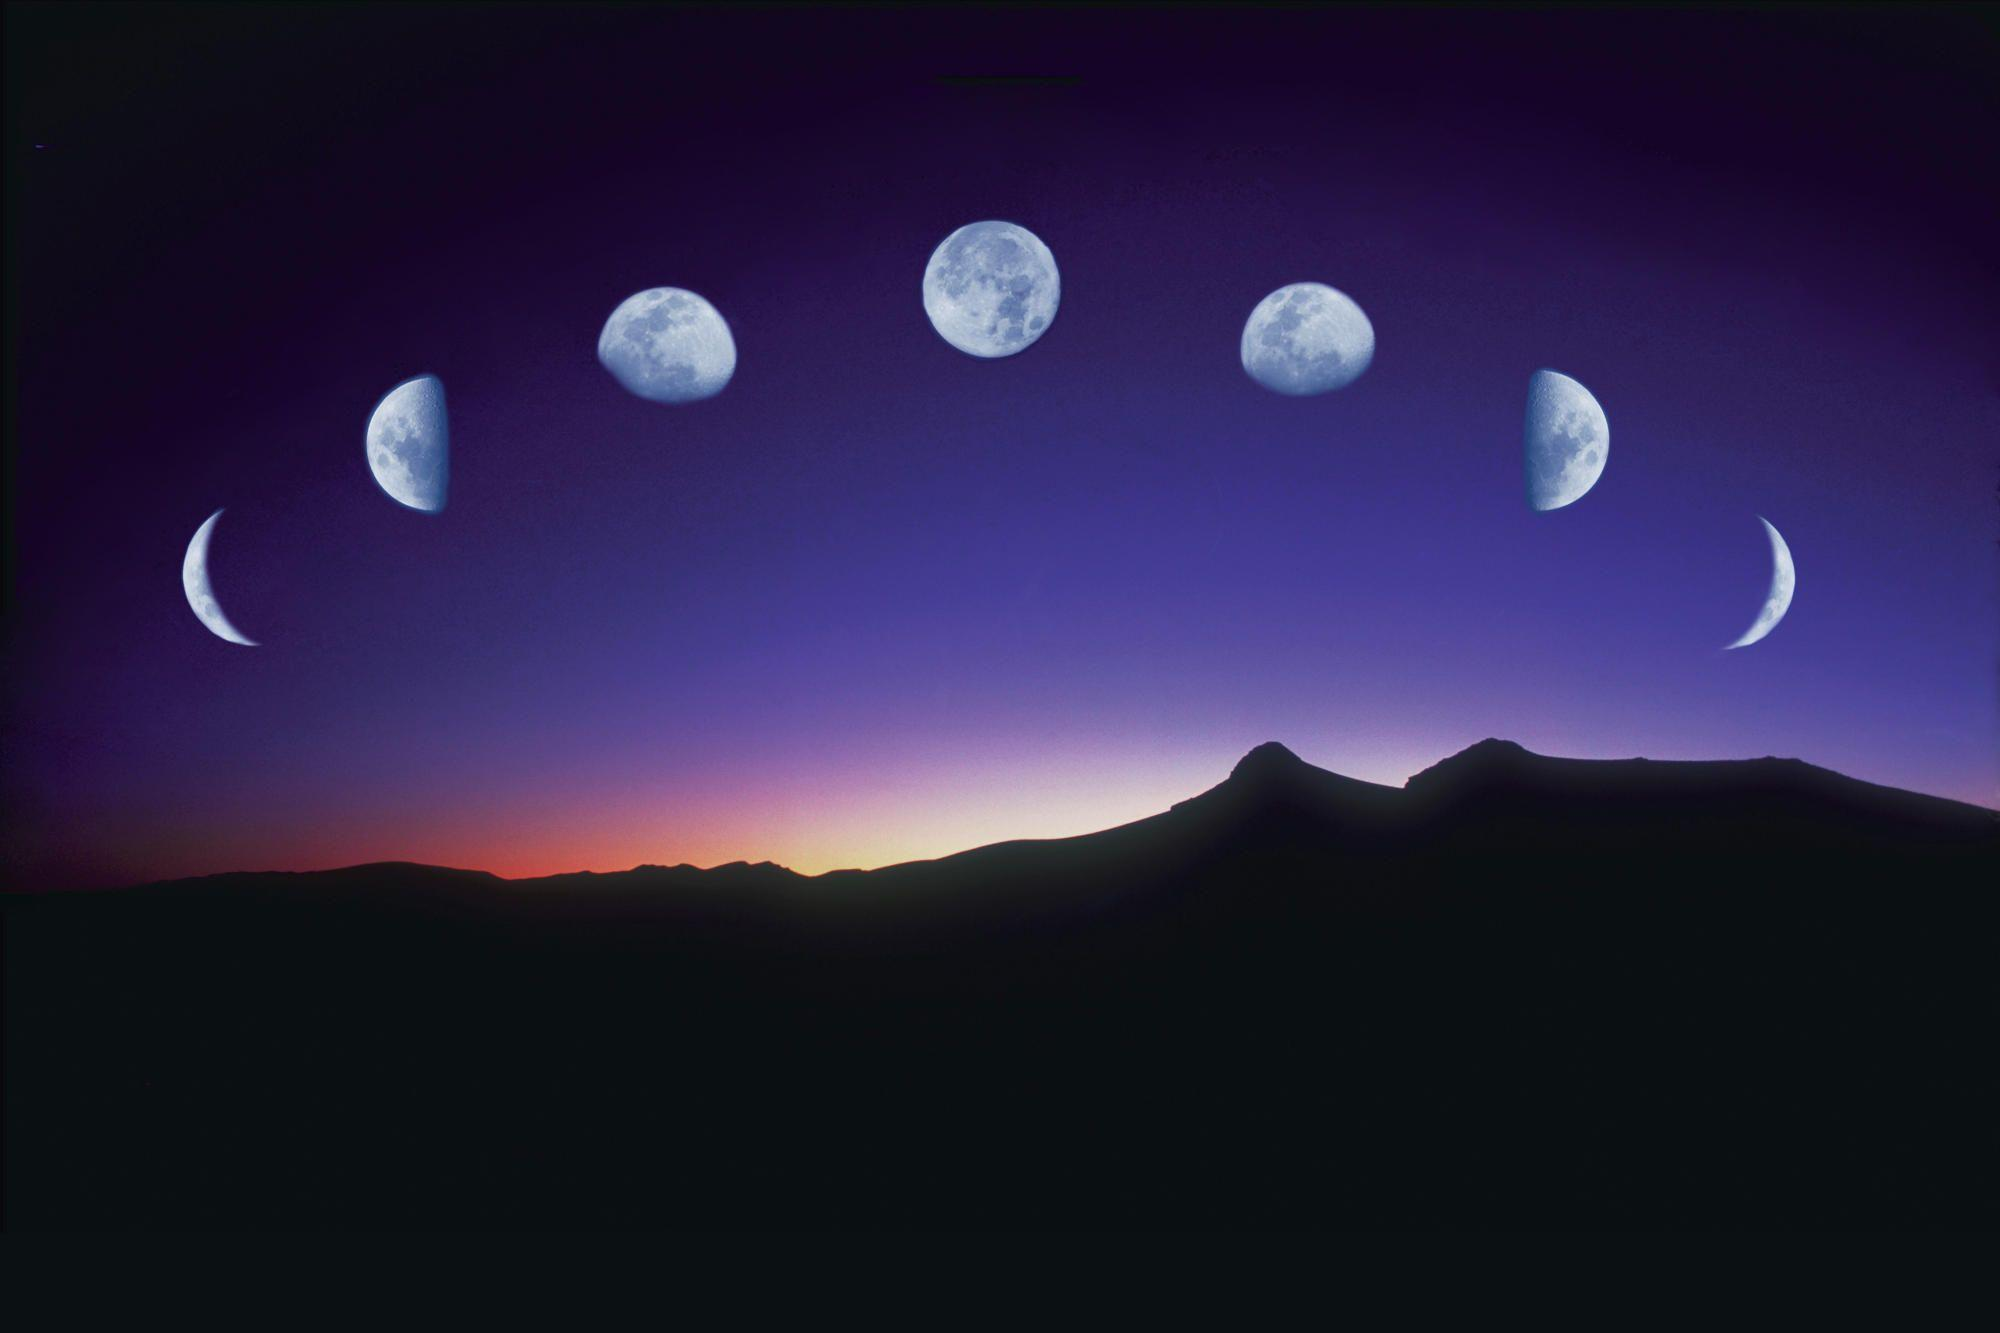 309 Moon HD Wallpapers | Background Images - Wallpaper Abyss